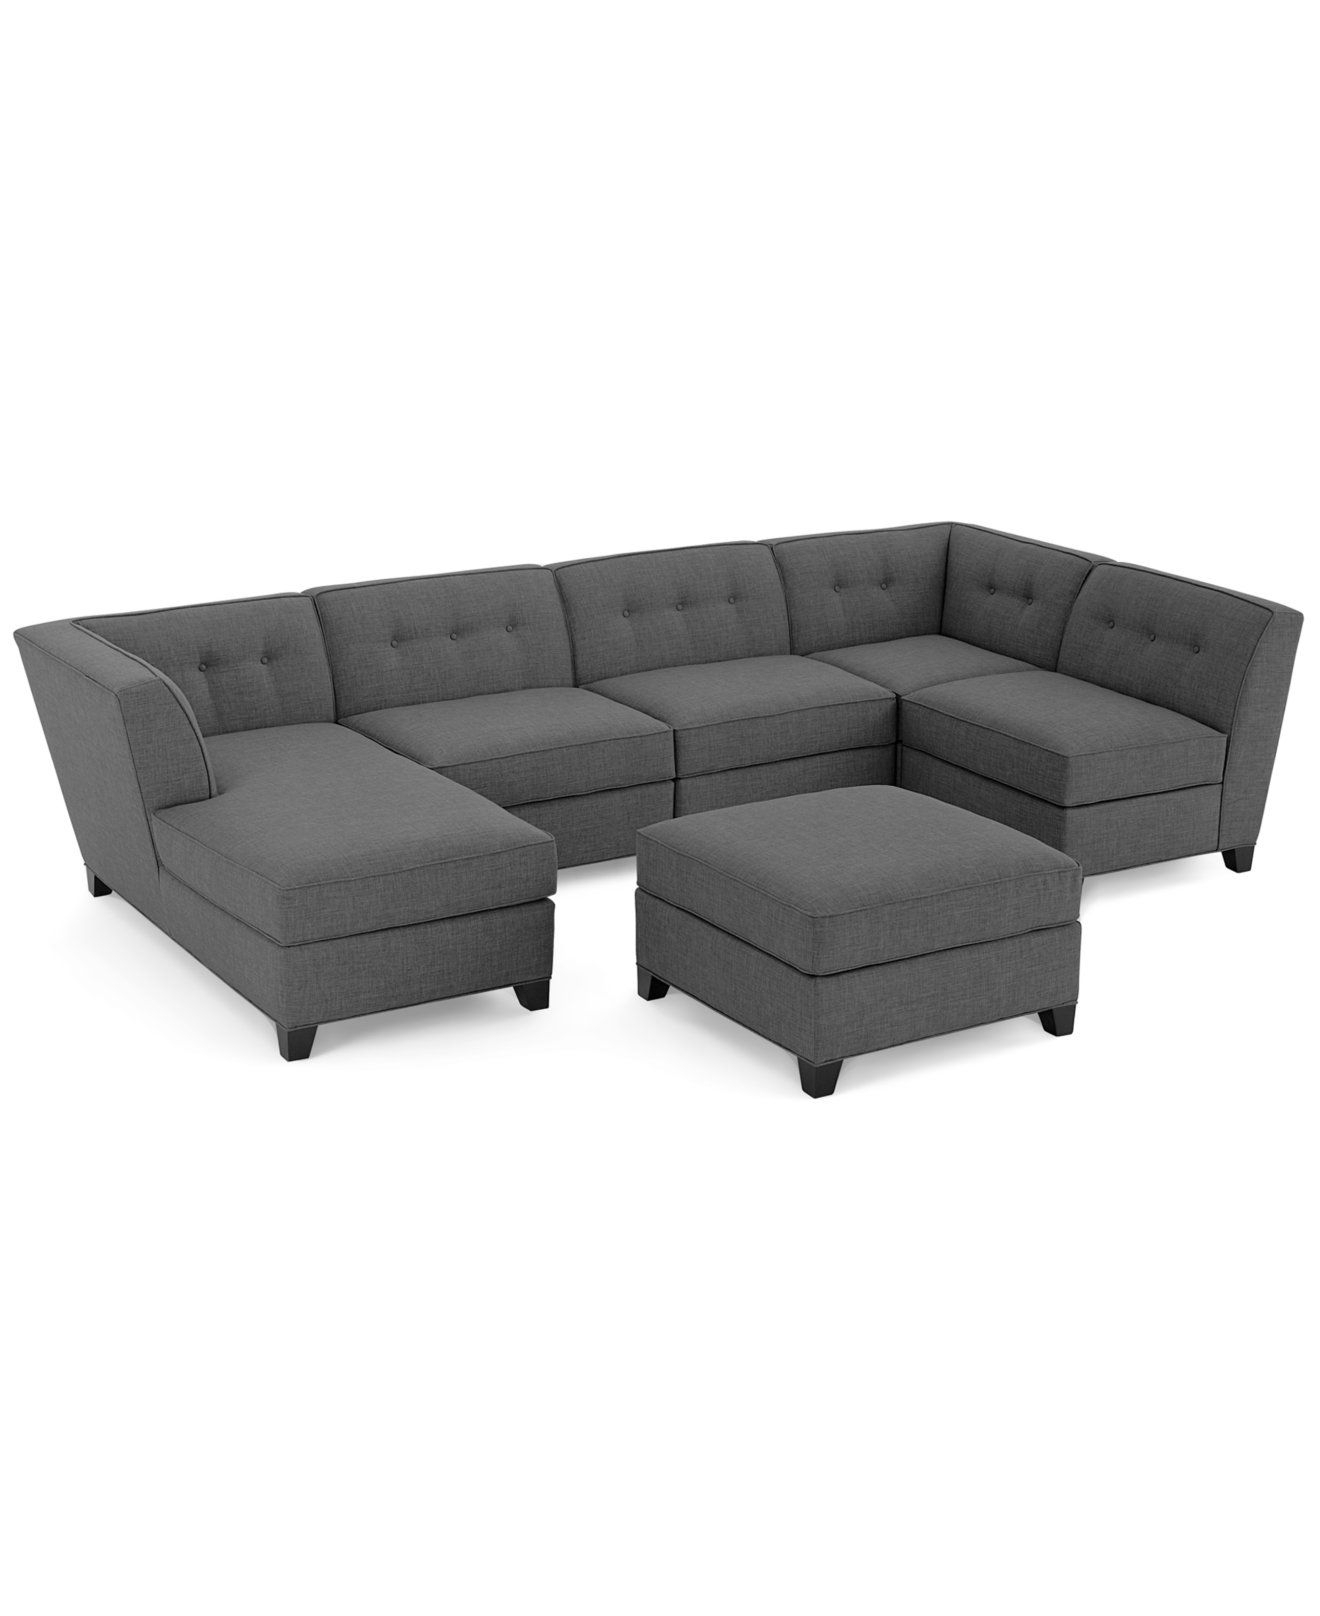 Newest Harper Fabric Modular Sectional Sofa, 6 Piece (Square Corner Unit Inside Harper Down Oversized Sofa Chairs (View 14 of 20)